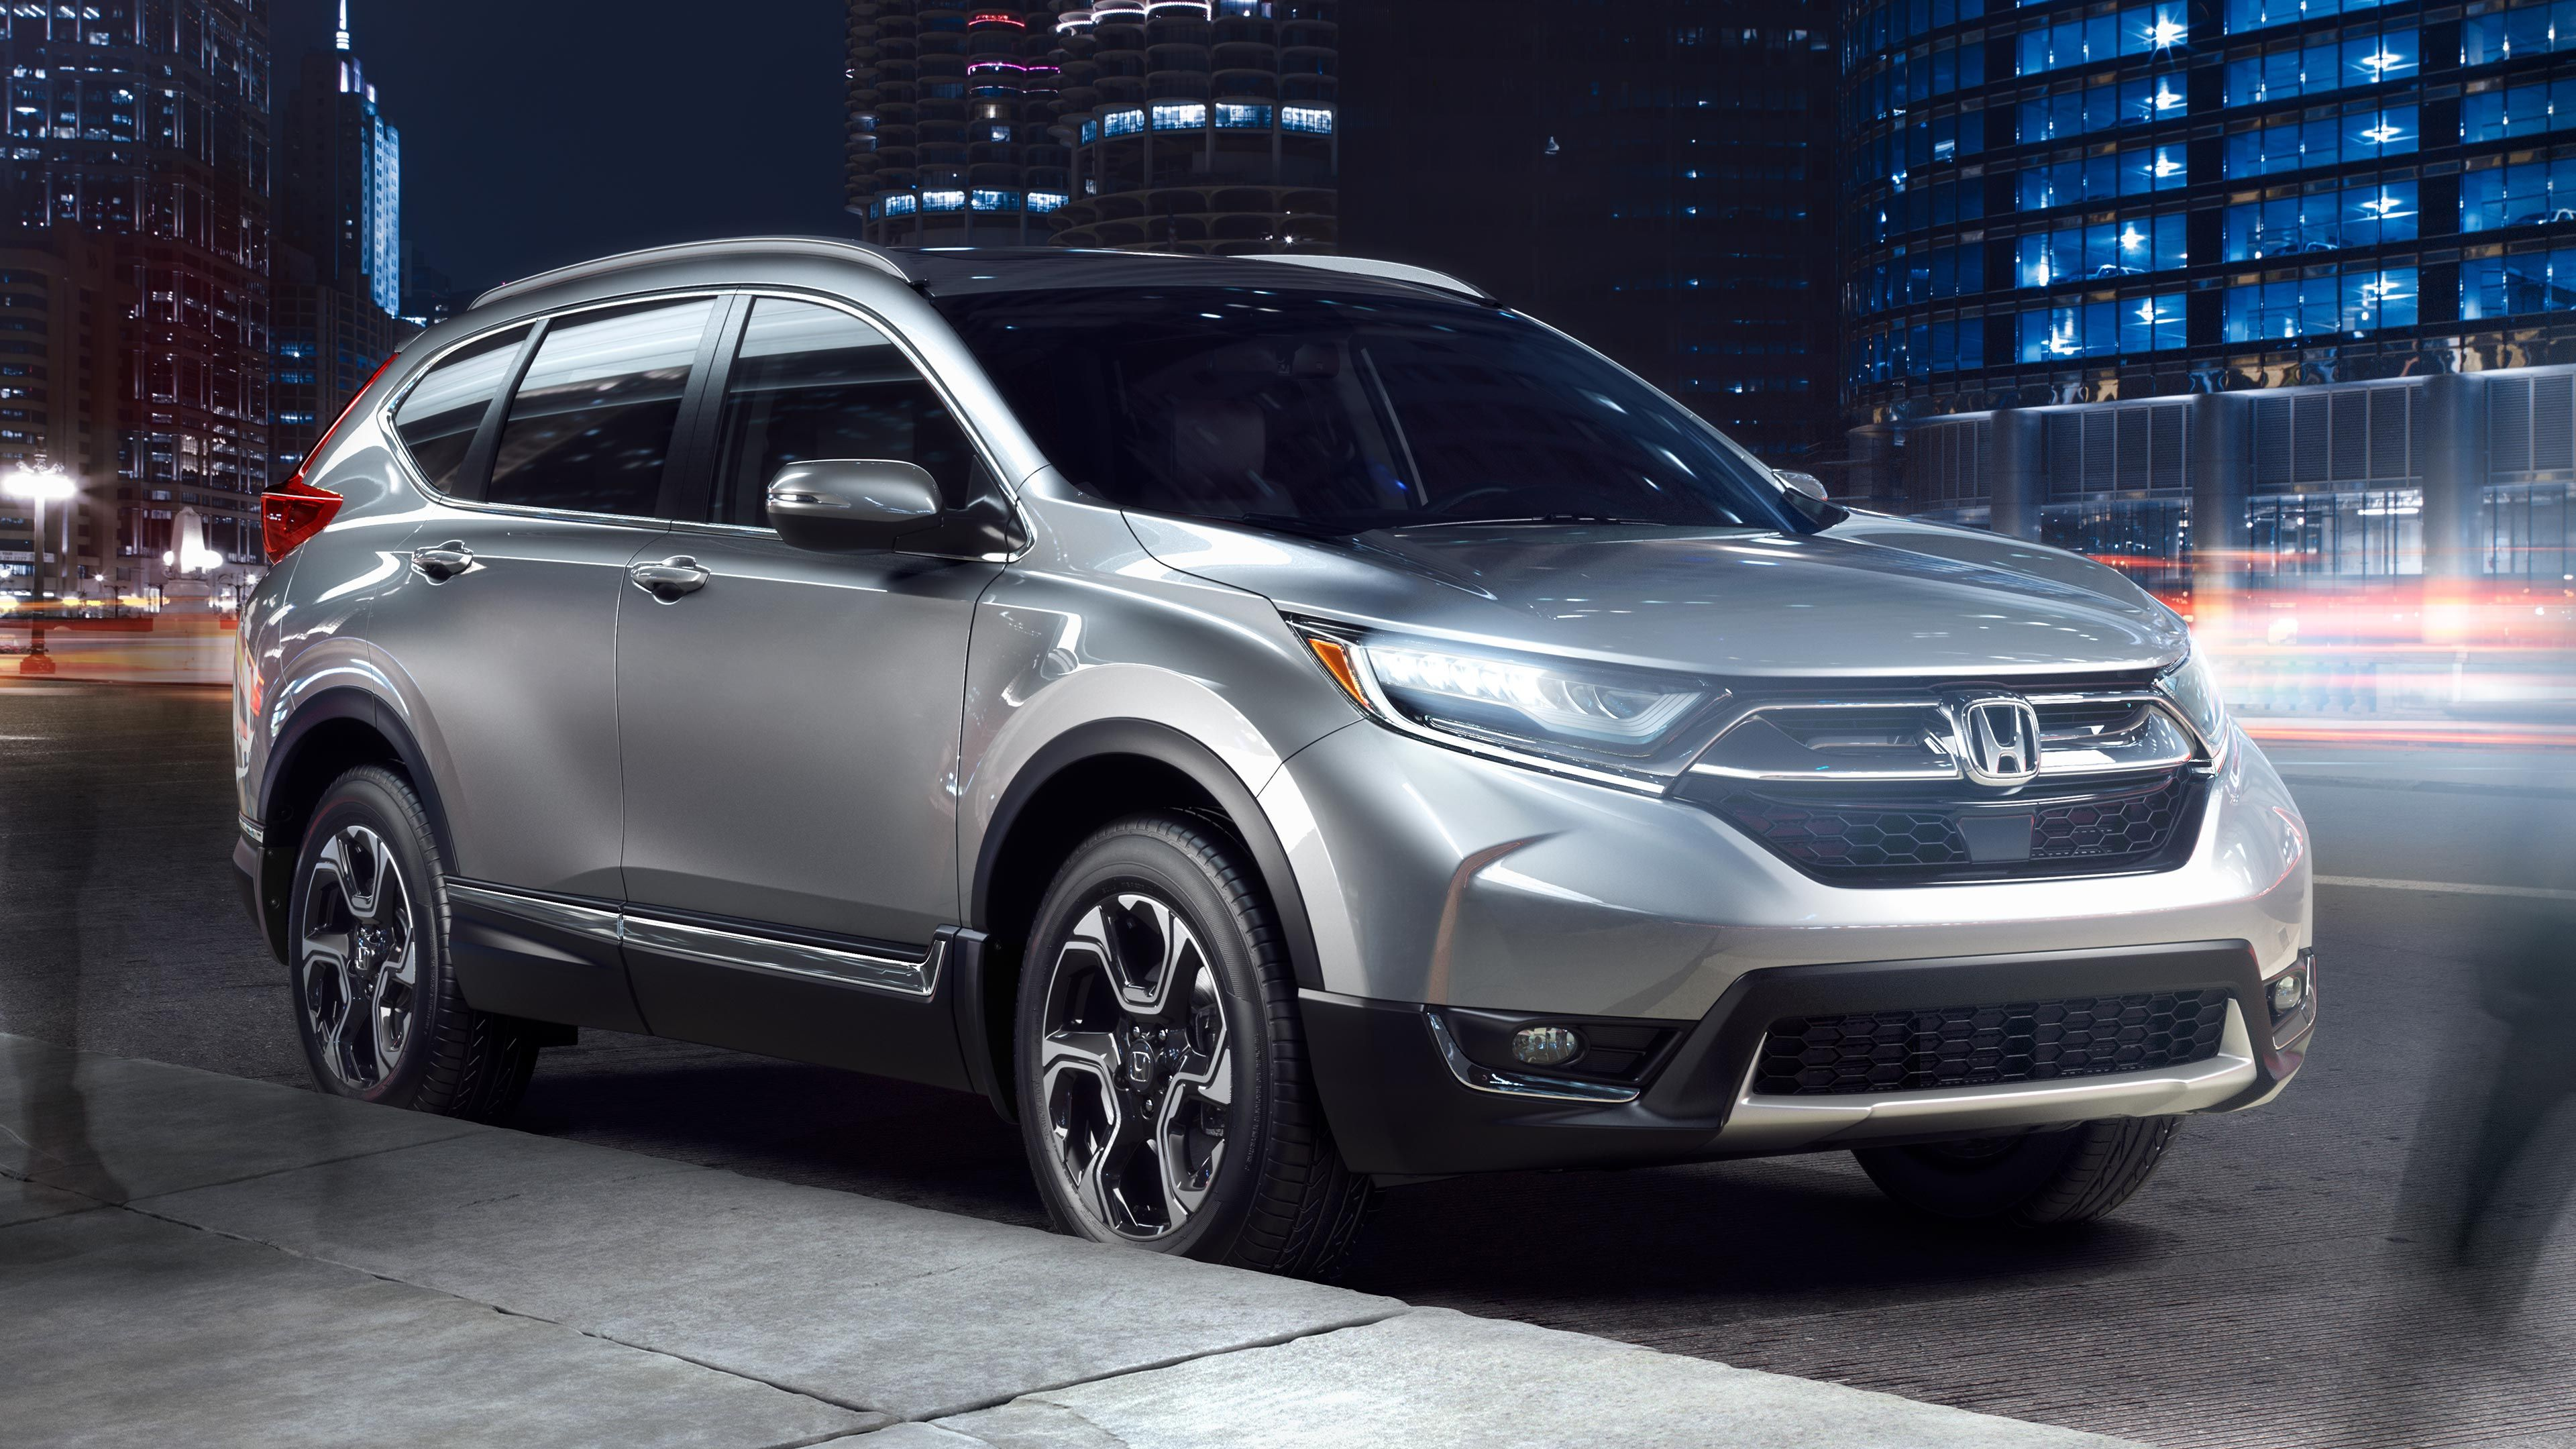 Image of 2017 CRV parked on road at night (With images